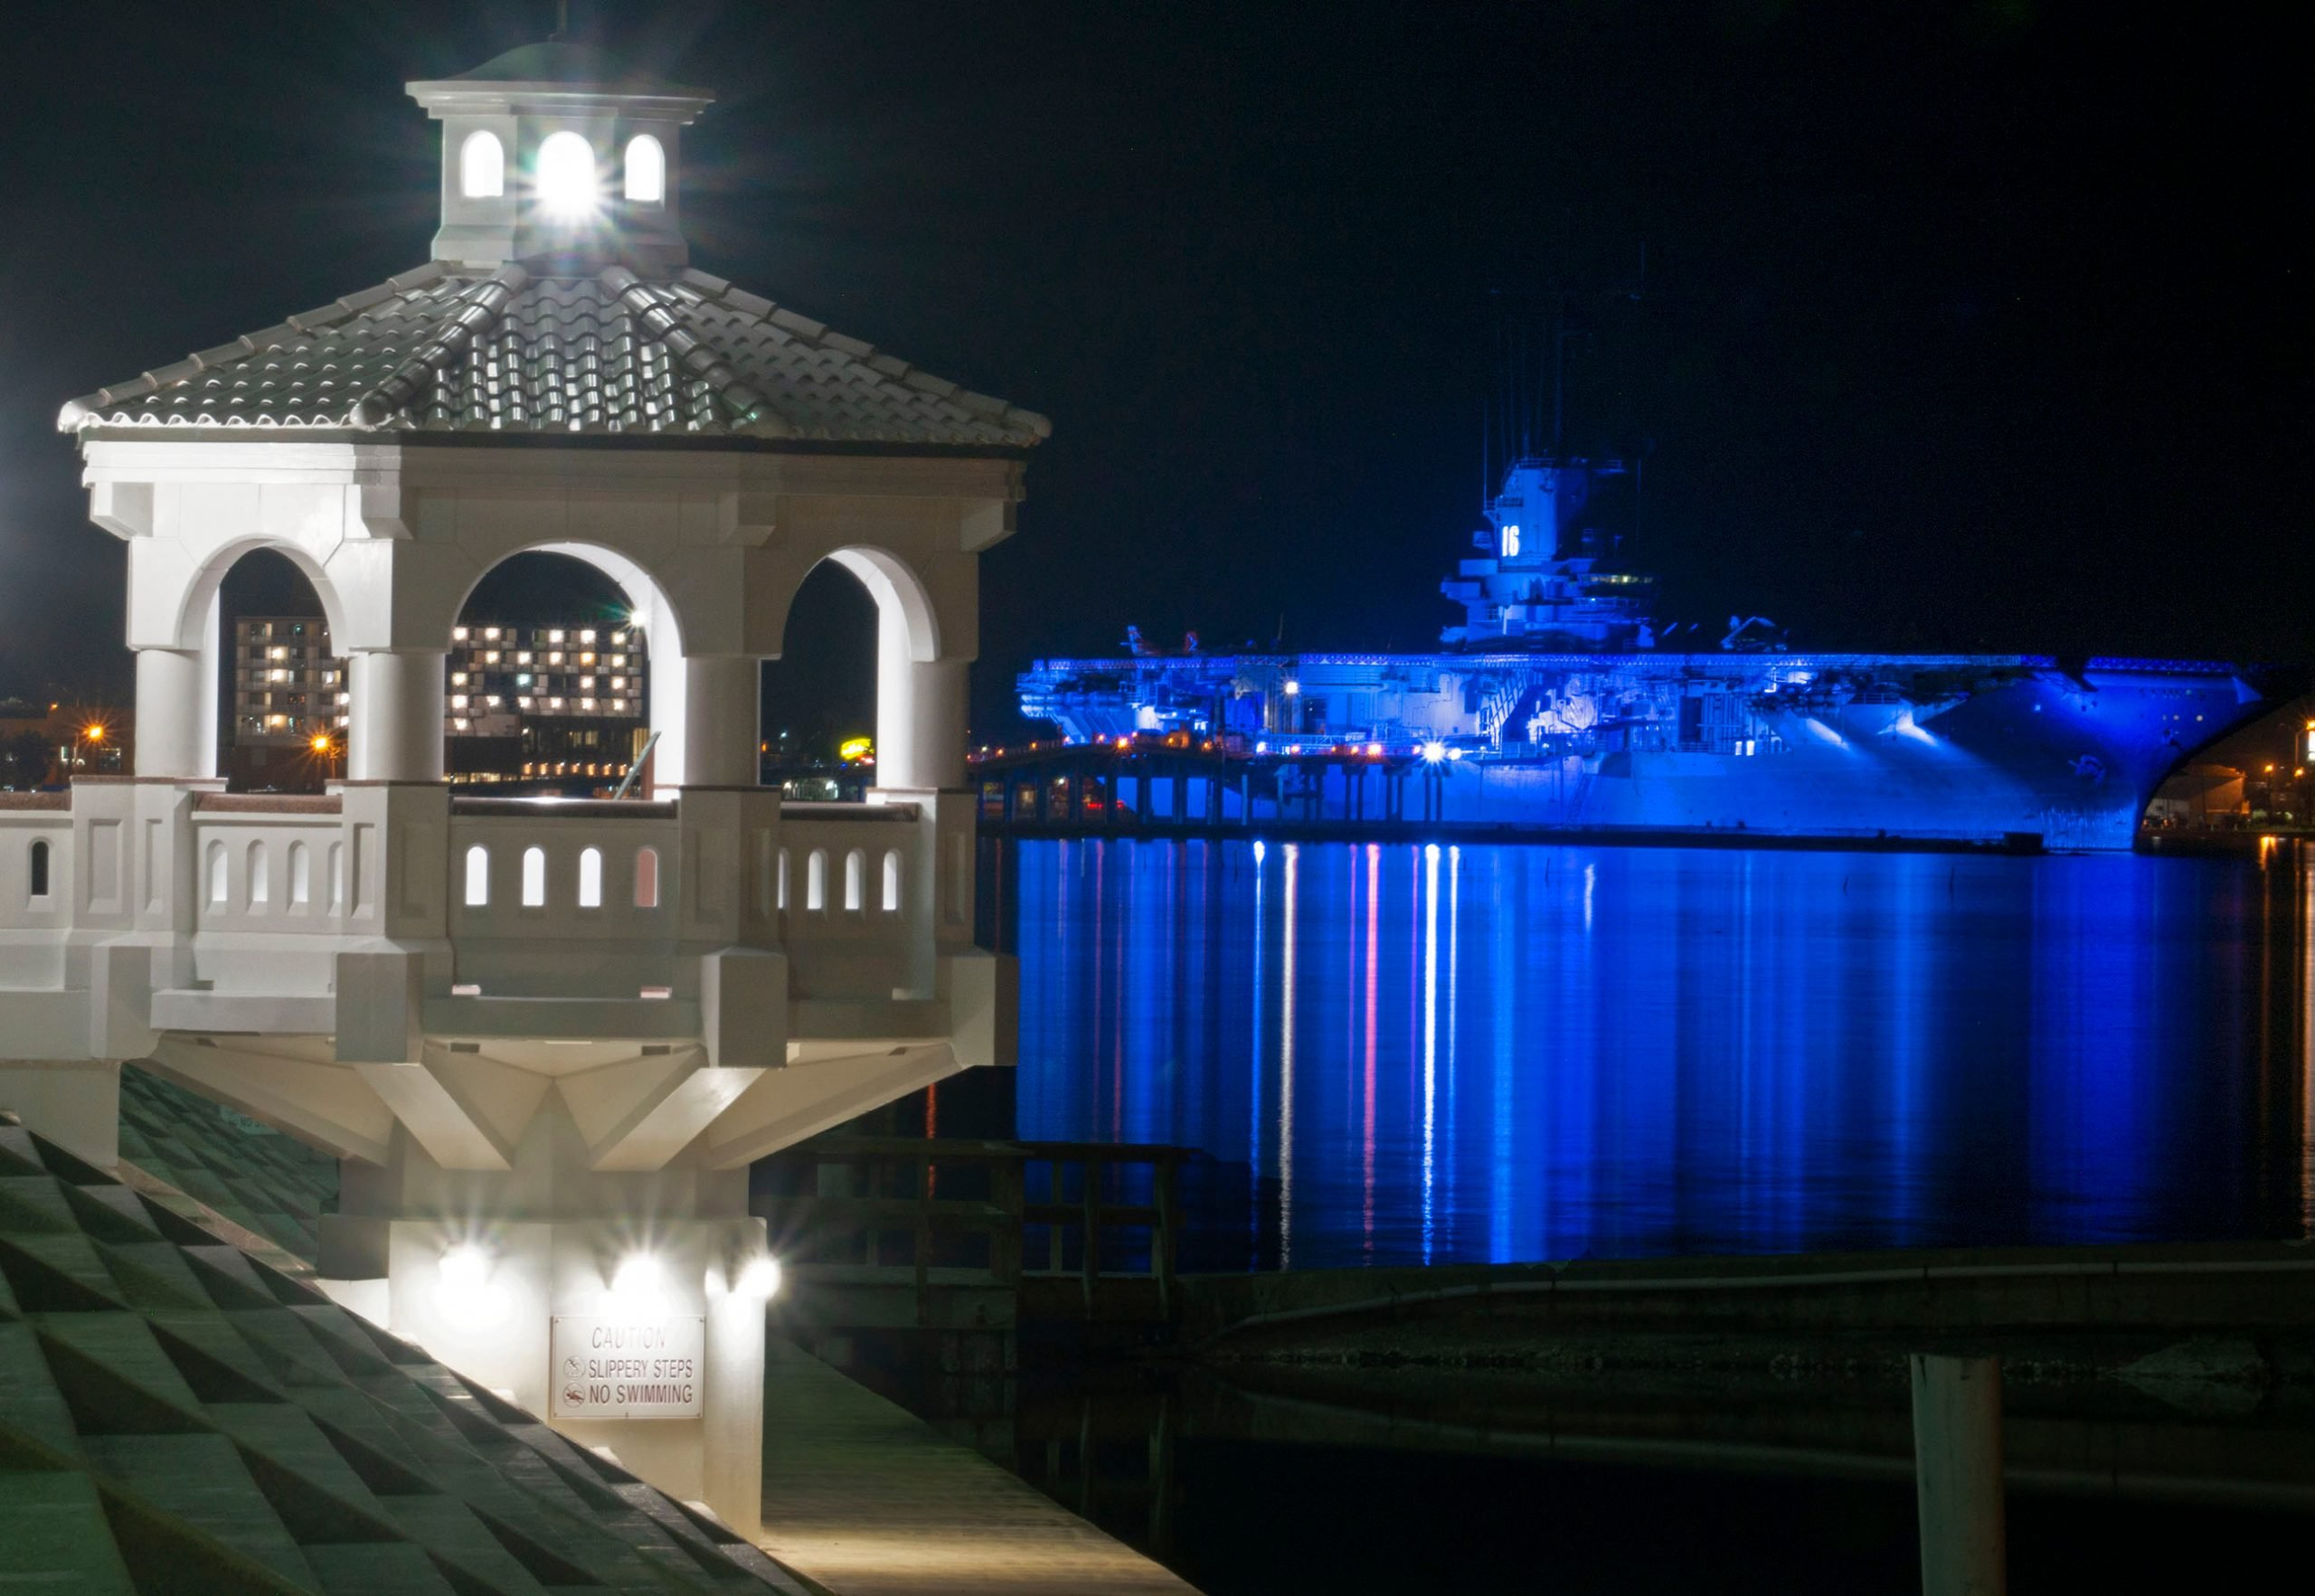 blue ghost of uss lexington lit up at night in corpus christi, one of the most haunted places in texas